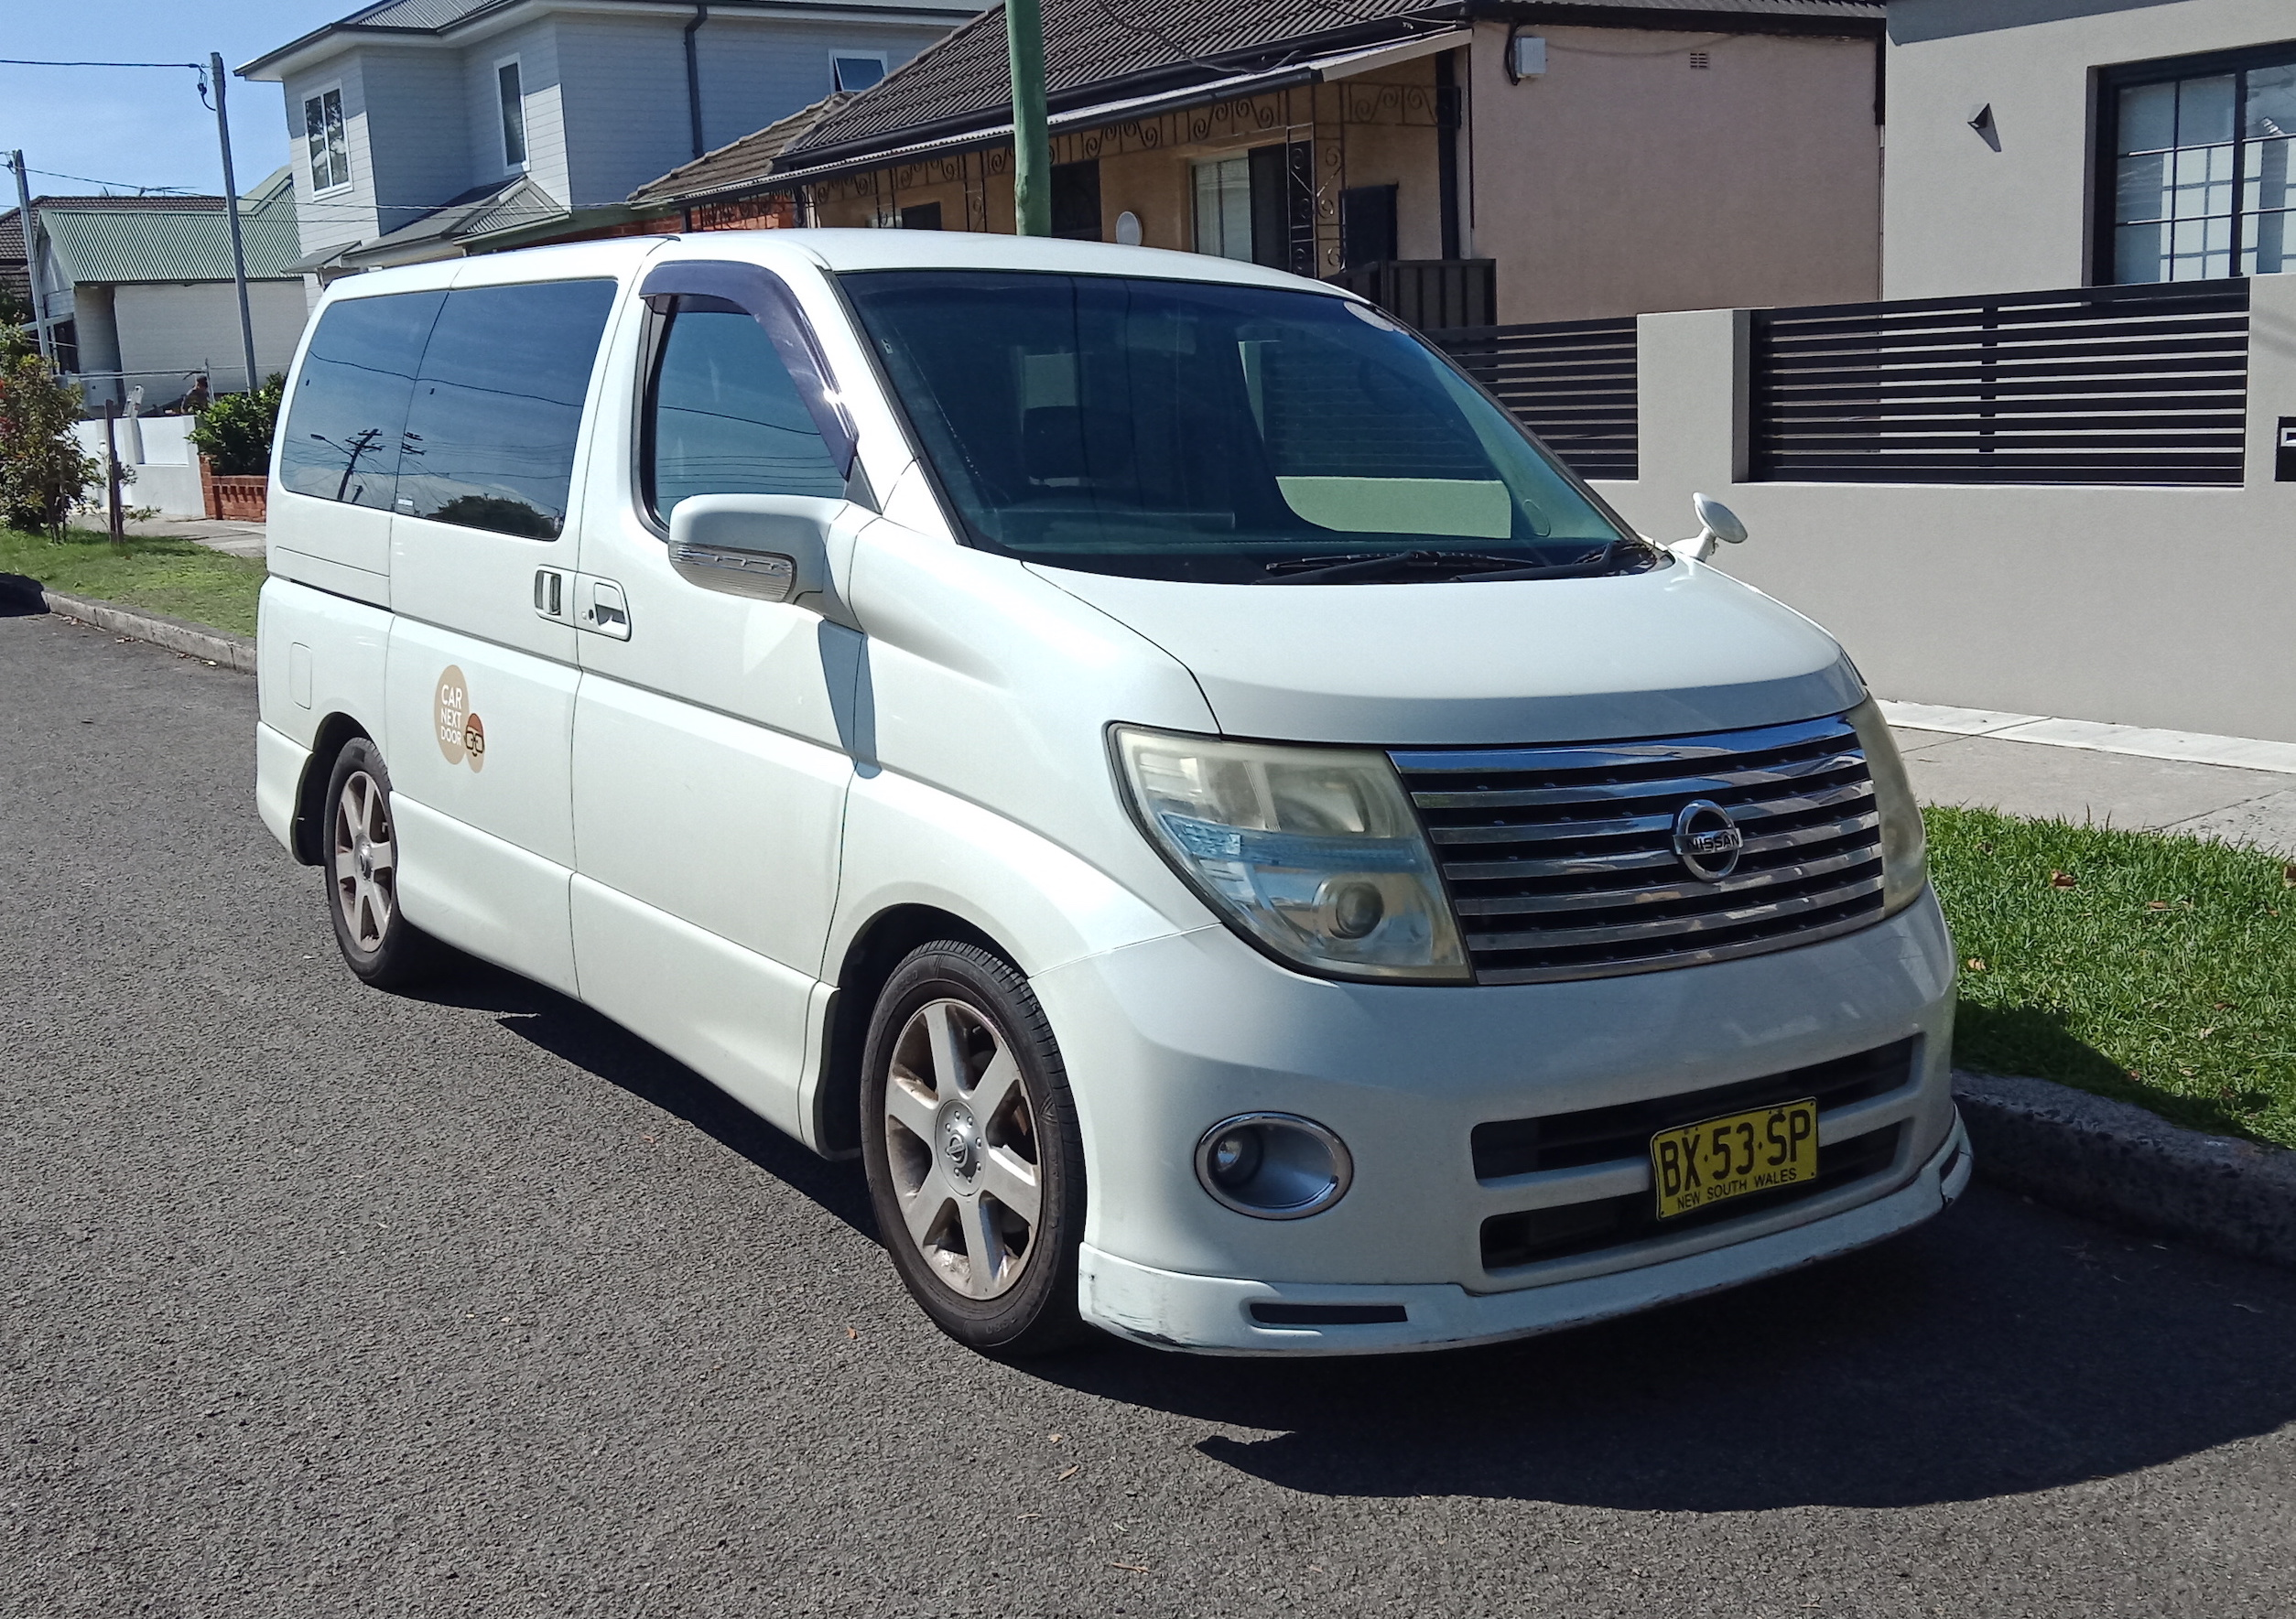 Picture of Simon's 2006 Nissan Elgrand